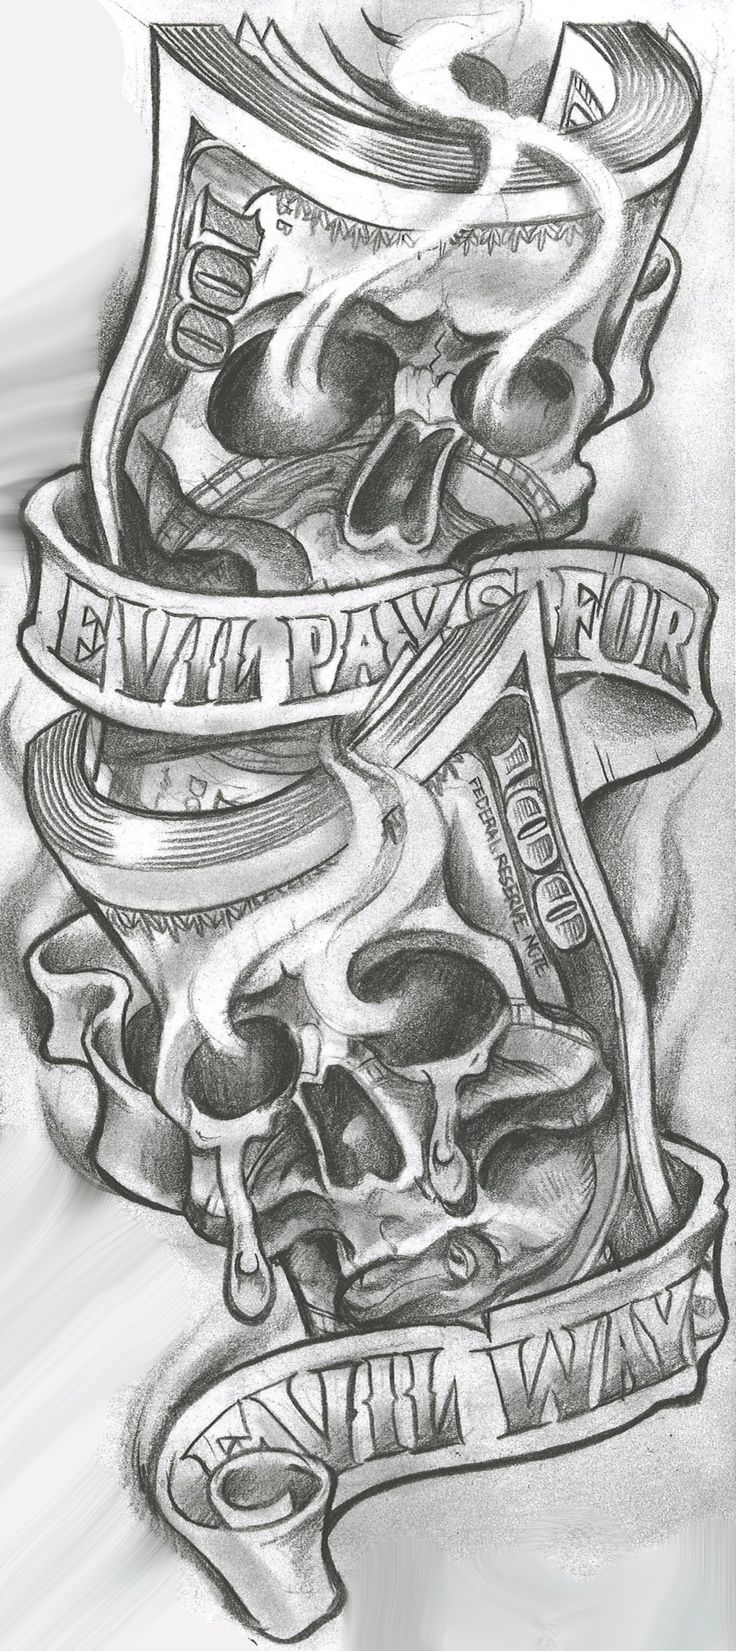 50 meaningful tattoo ideas art and design - Get Money Tattoos Designs Should Get Your Answer